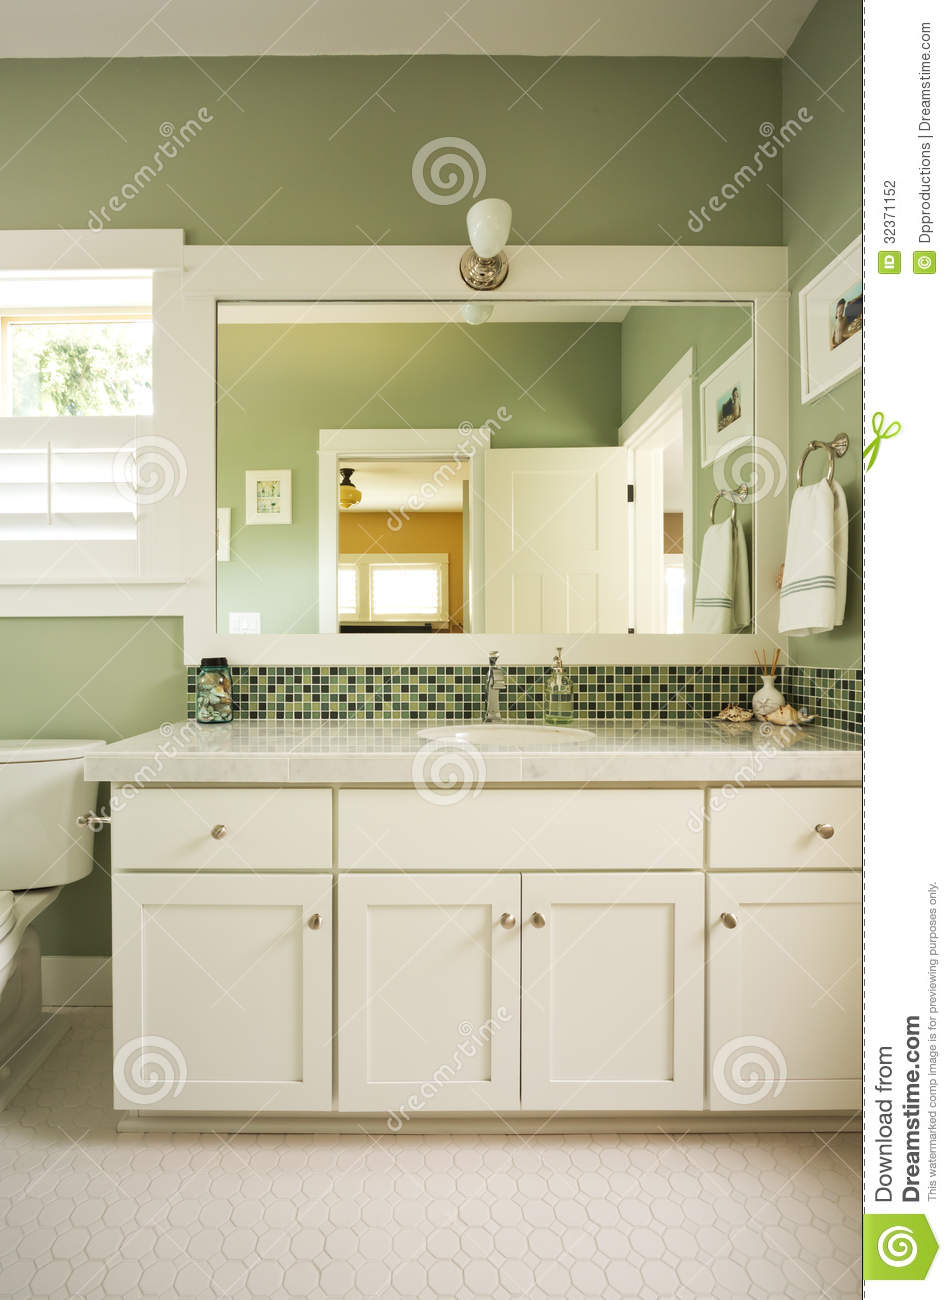 Bathroom Vanity And Mirror Stock Photography Image 32371152